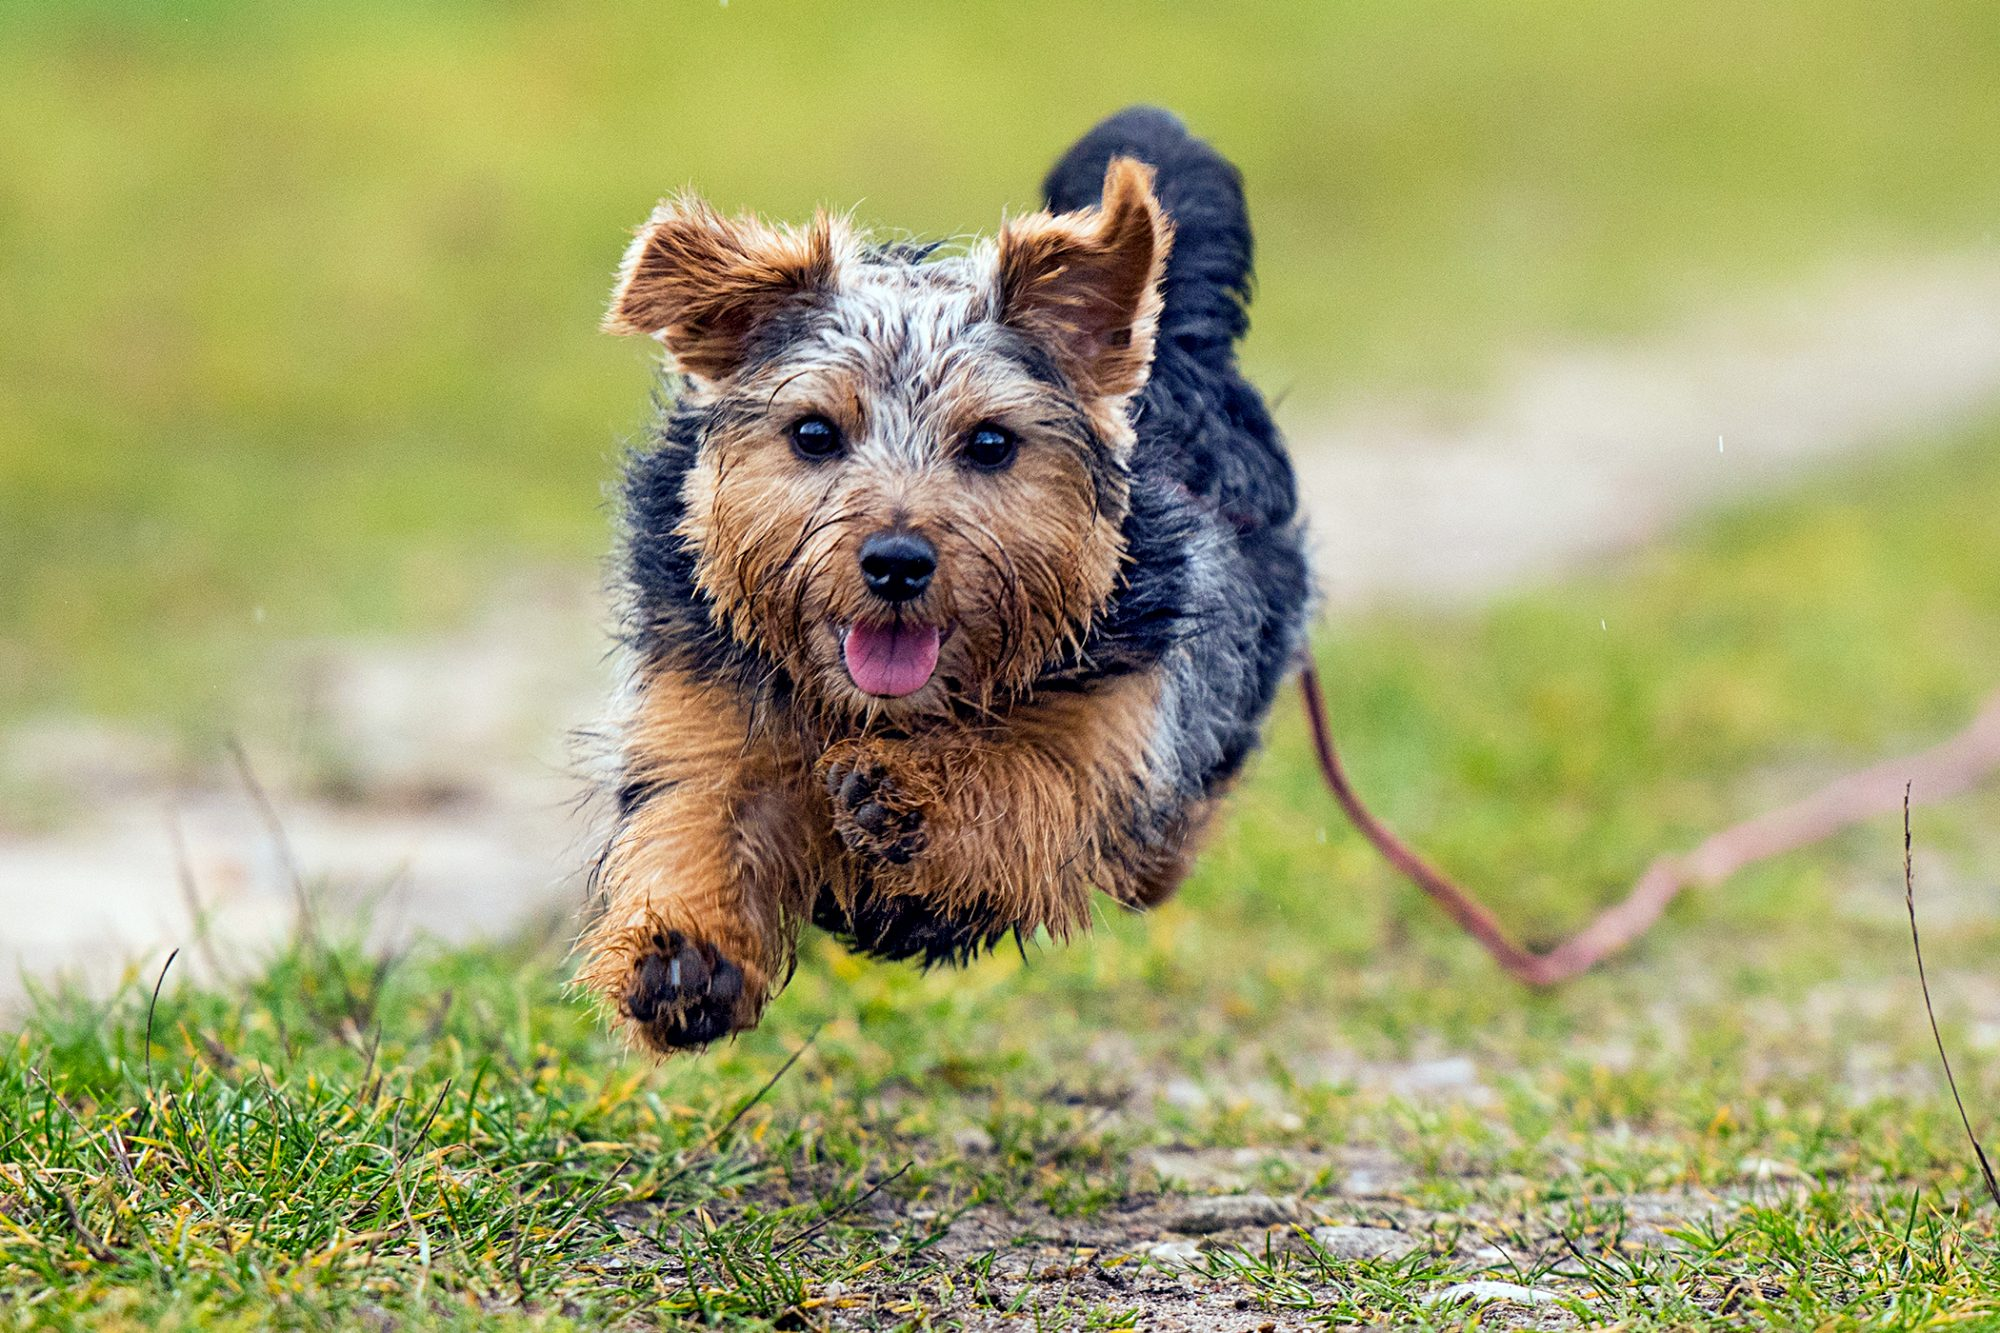 Black and tan Norfolk terrier runs through grass while on red leash